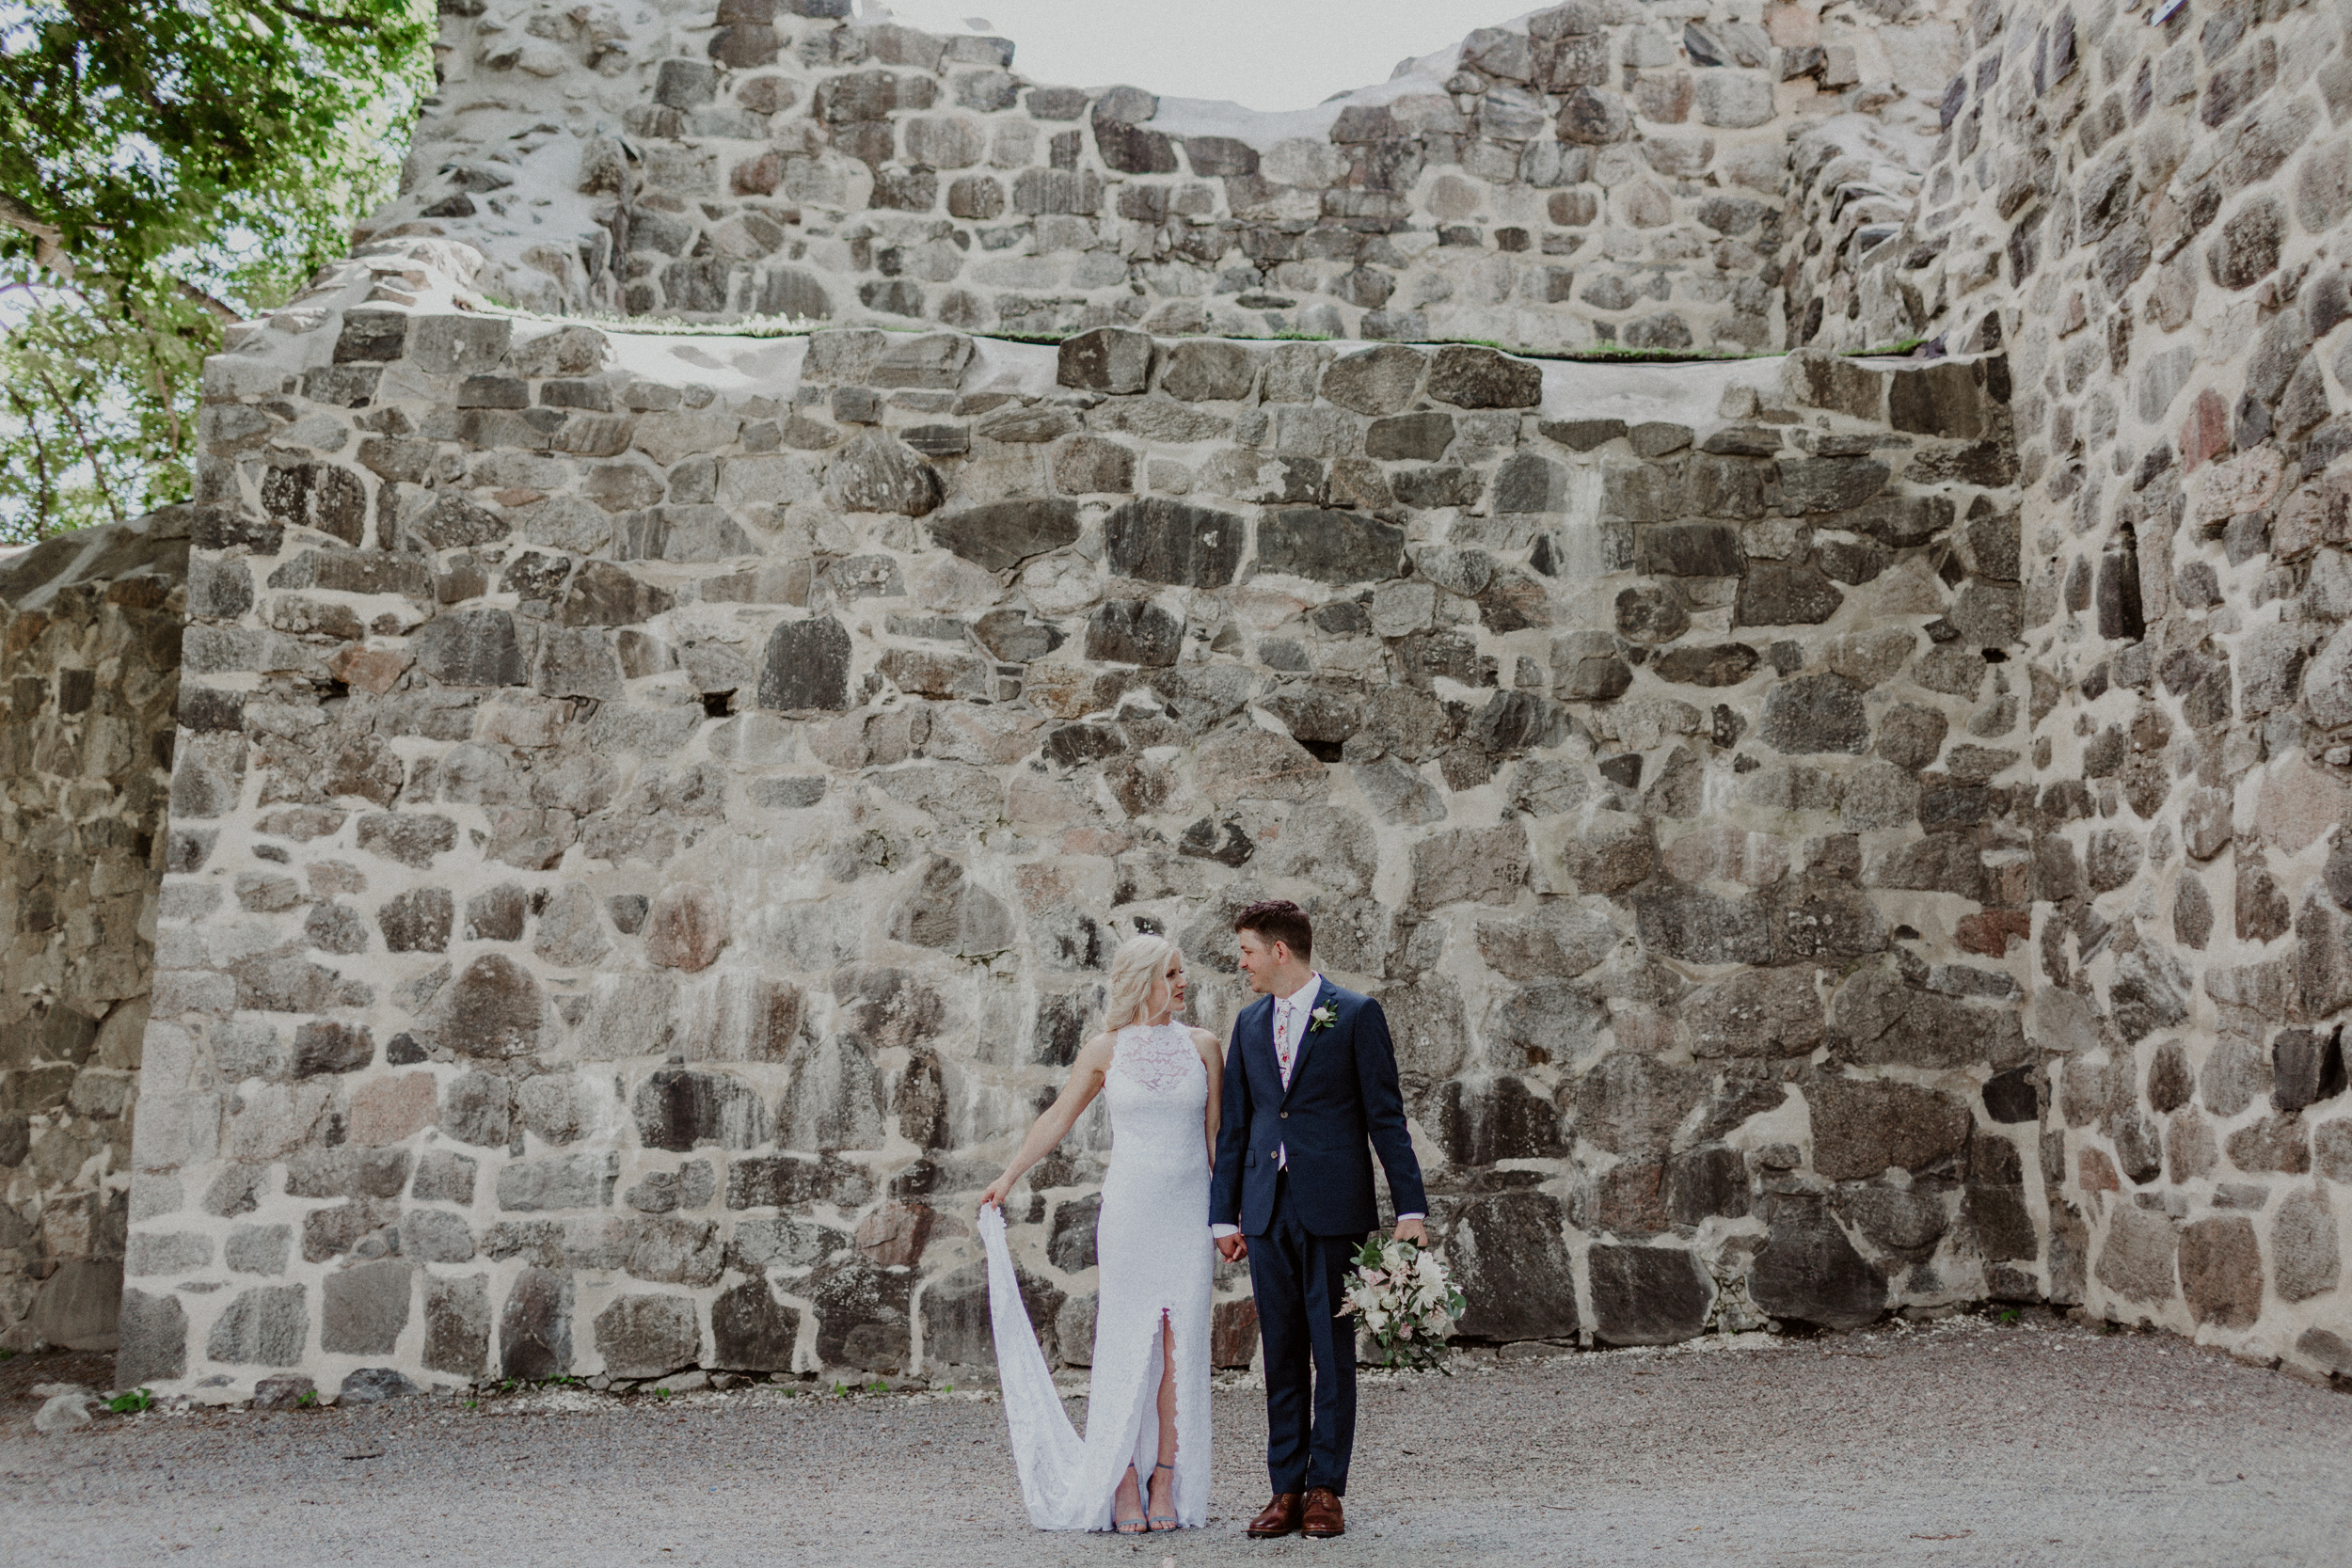 sigtuna-sweden-wedding_m_e-44.jpg